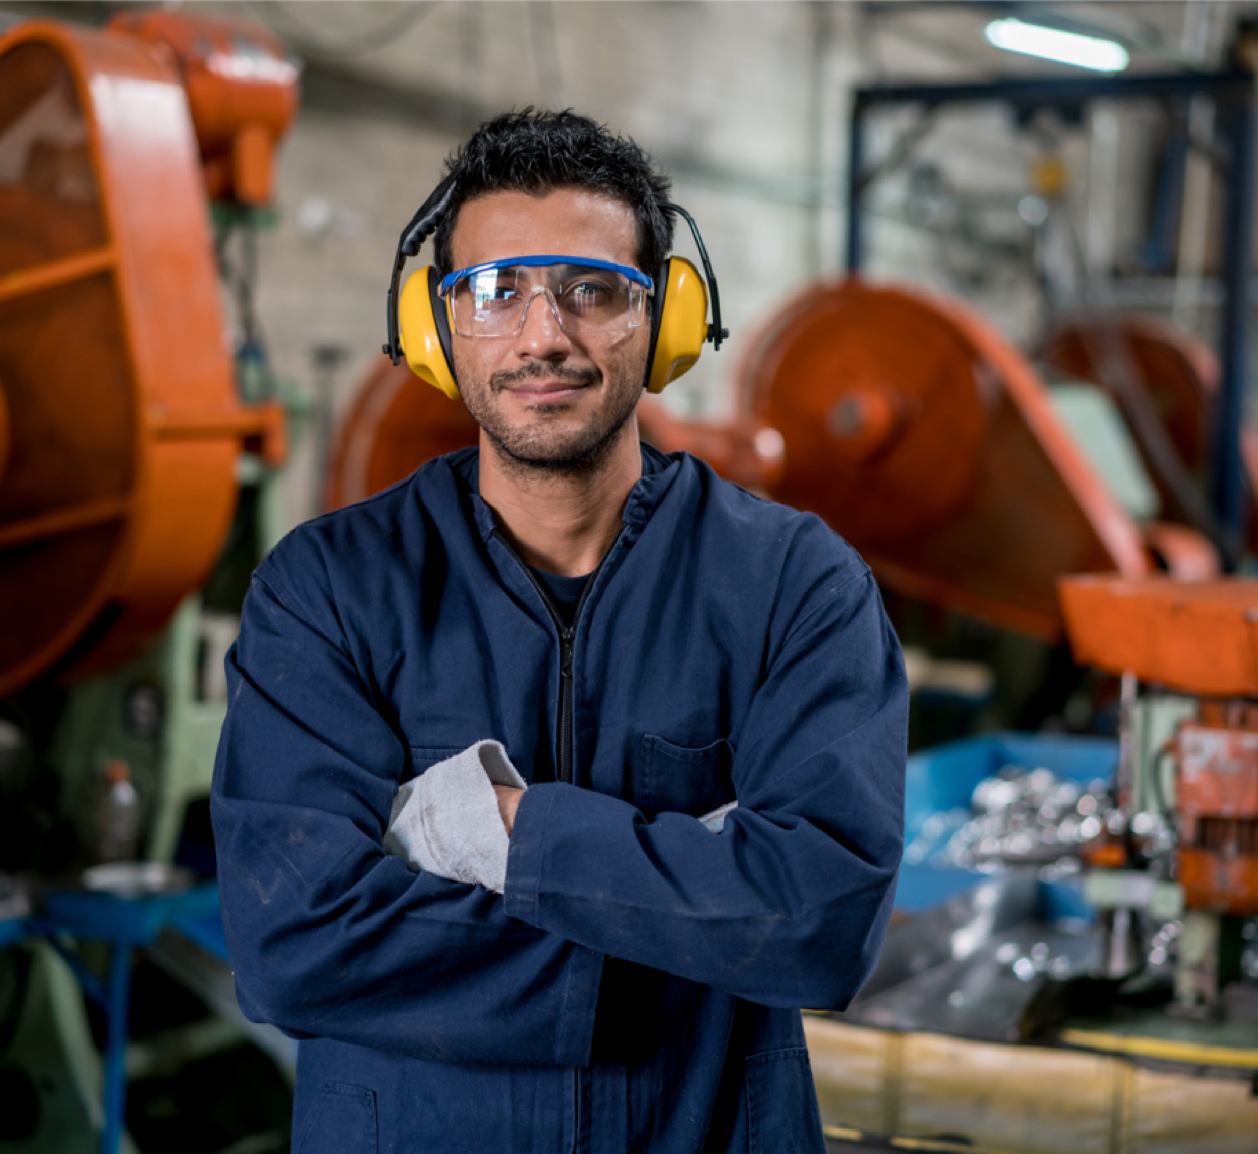 Man wearing goggles and sound ear muffs